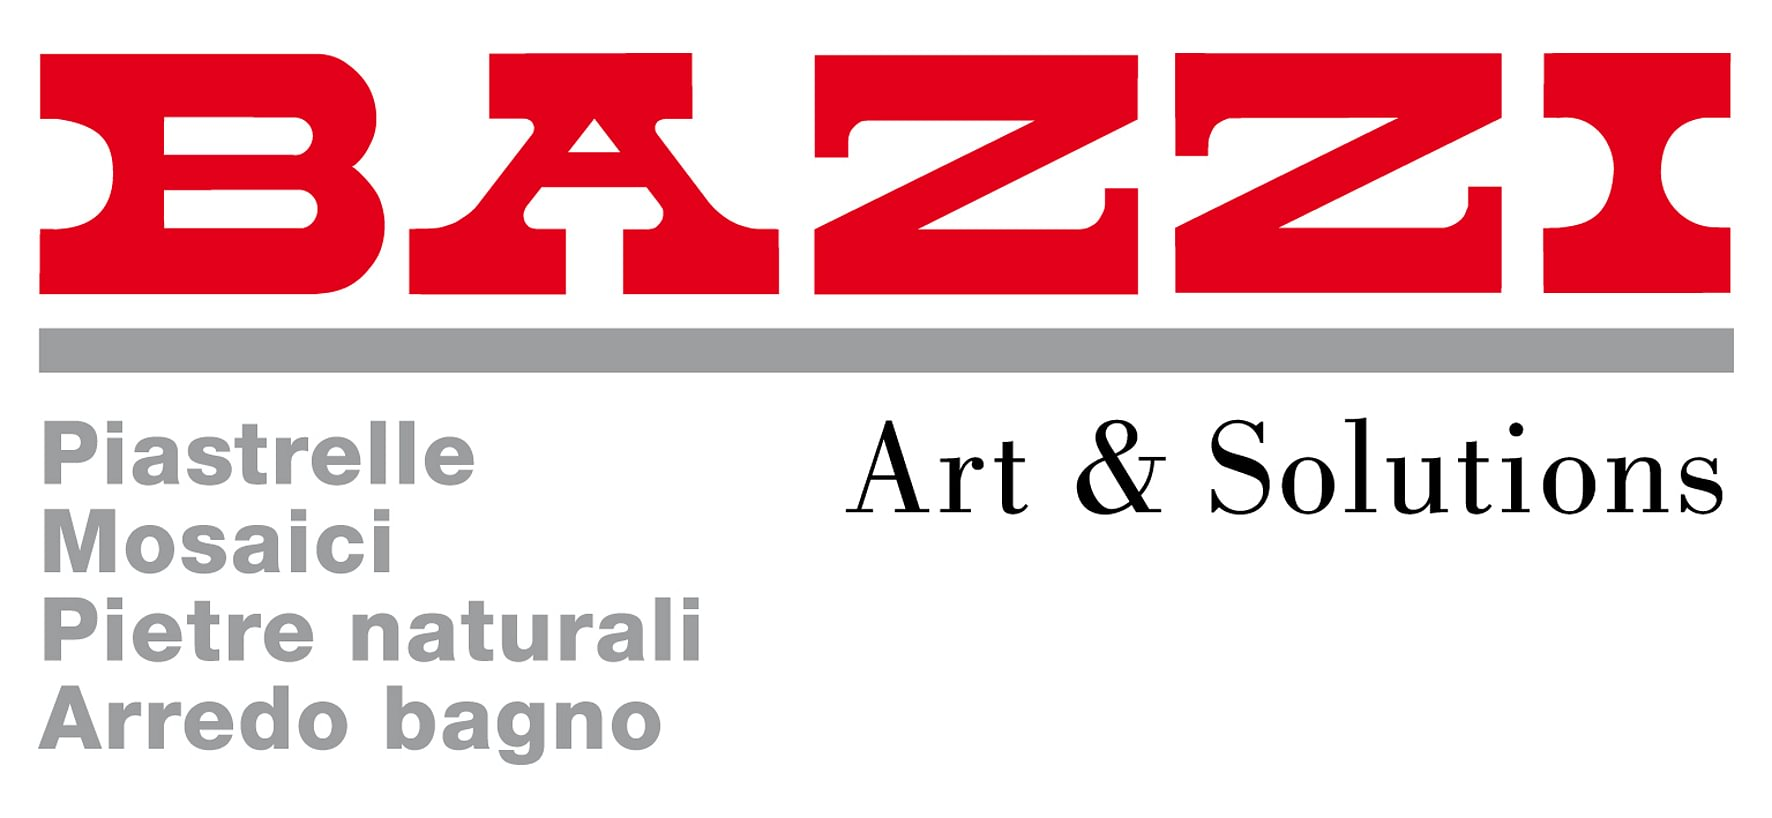 Bazzi - Art & Solutions